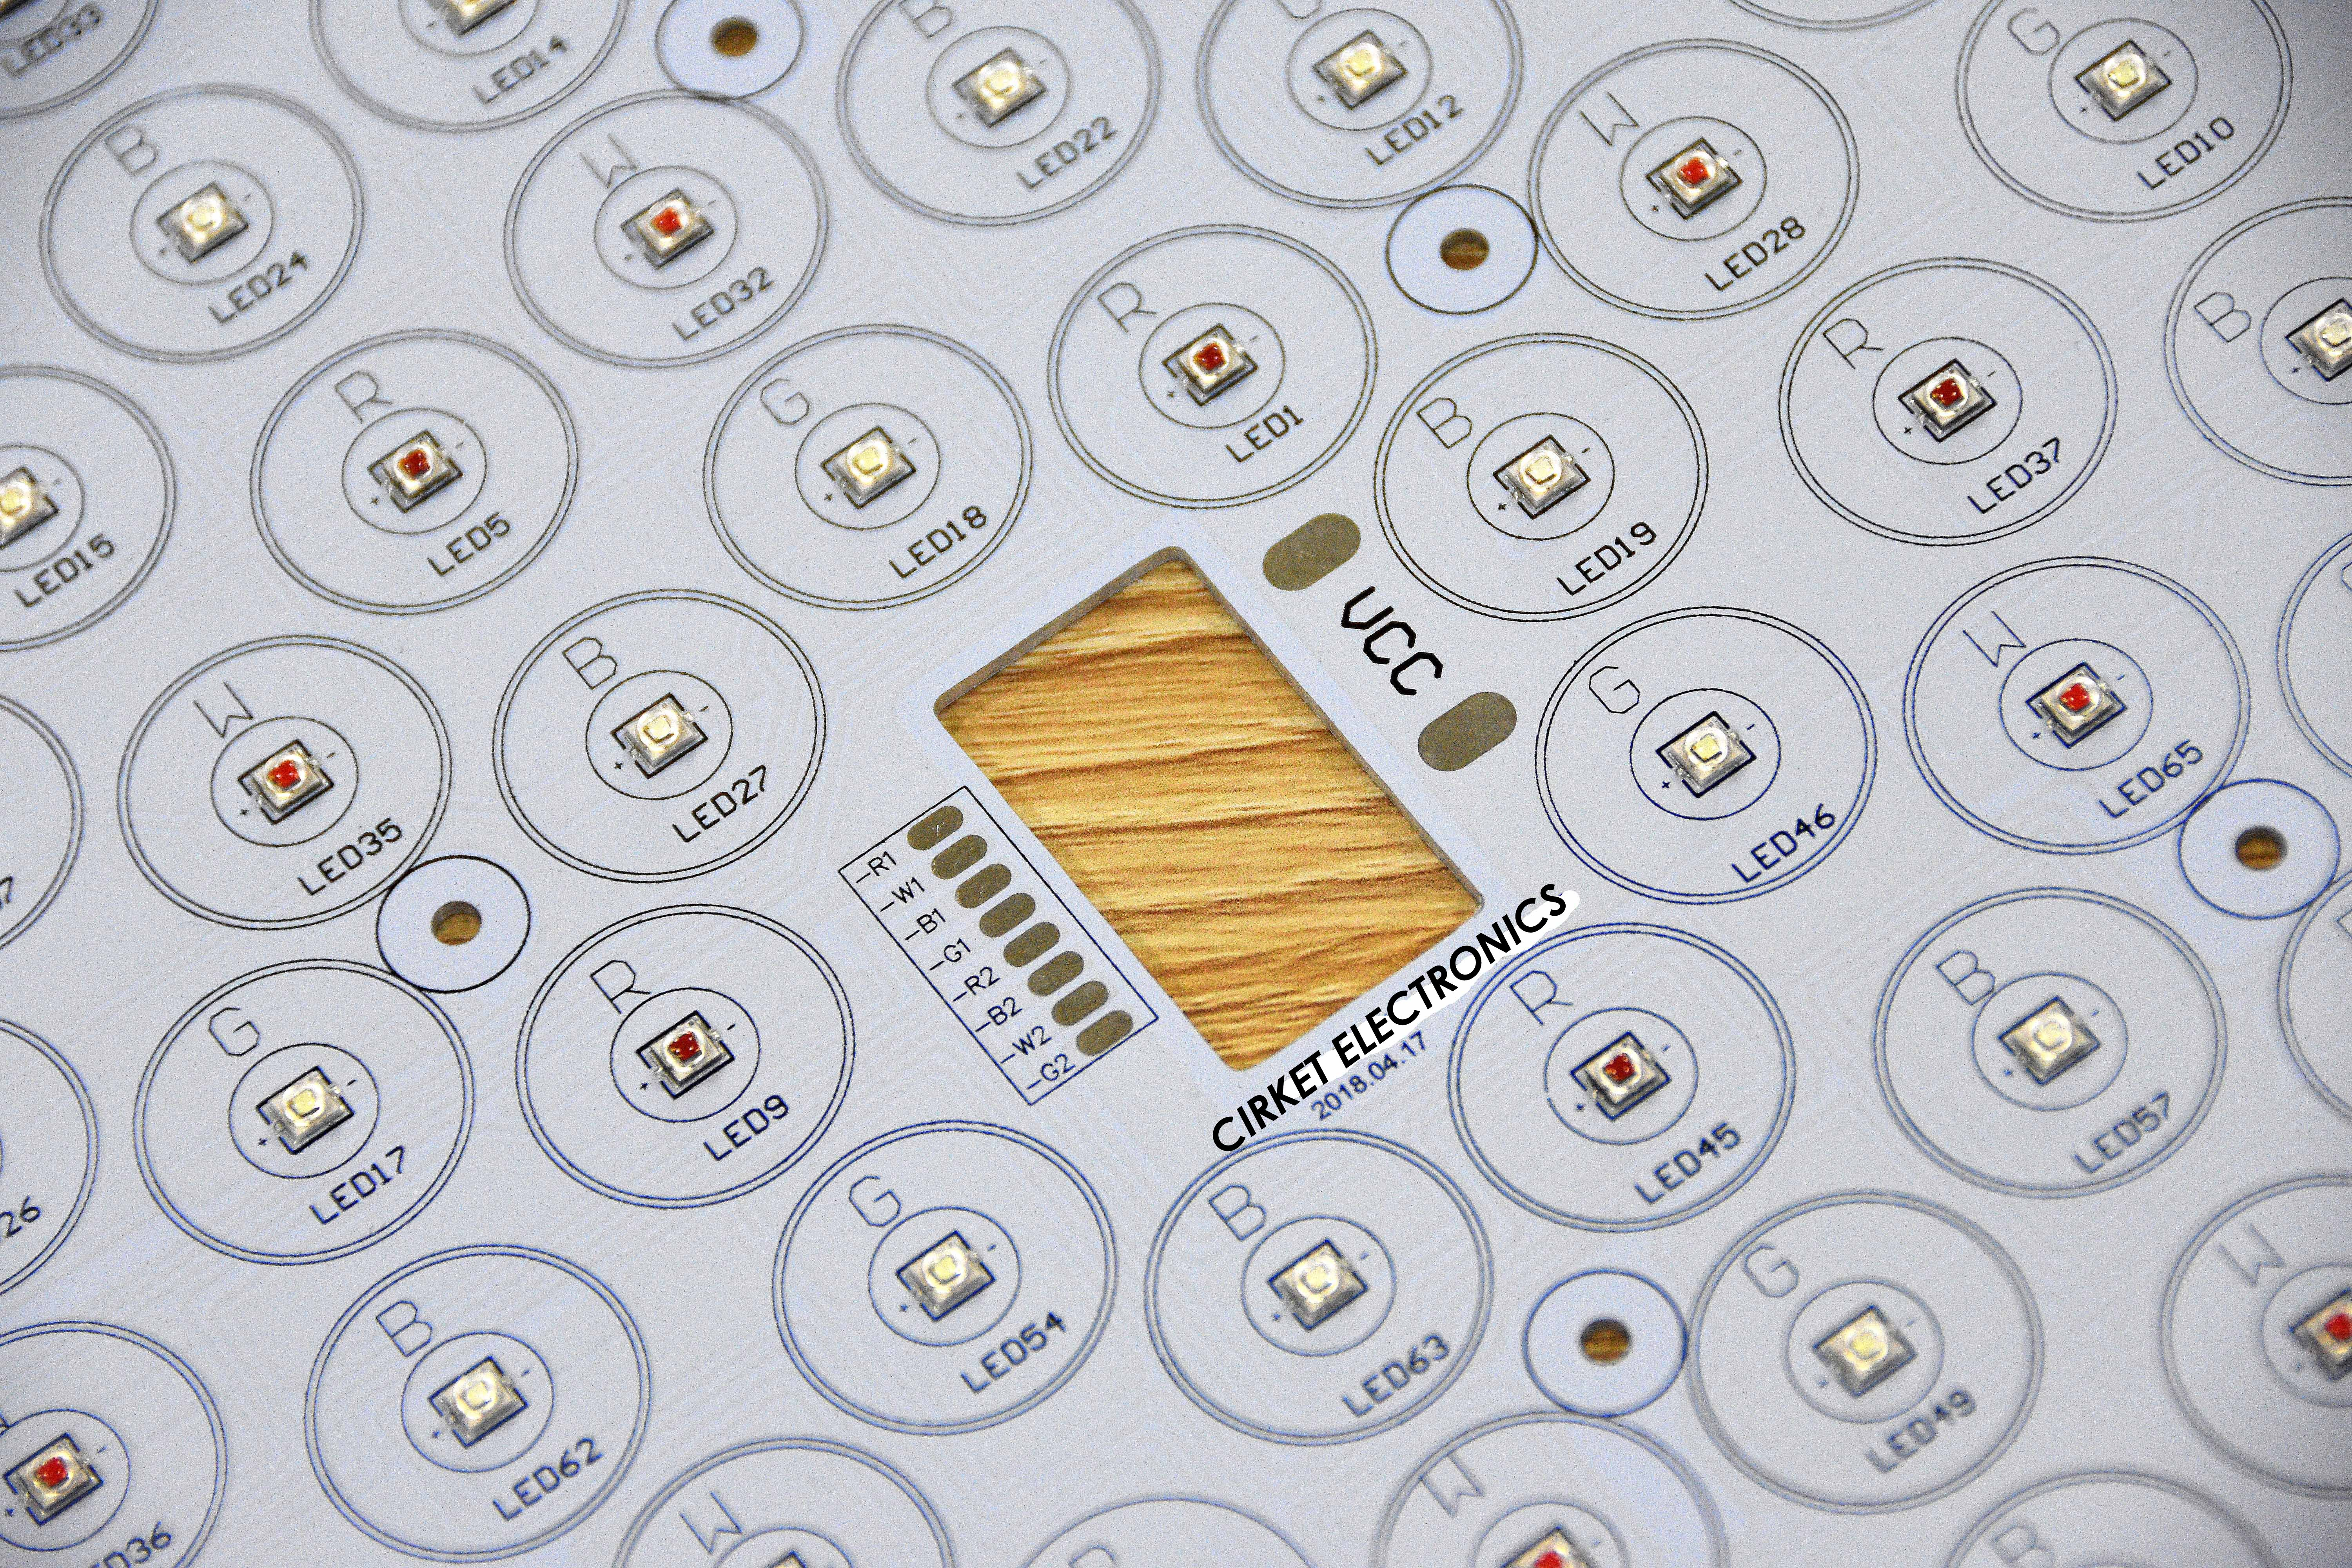 Led Pcb Circuit Board Suppliers And Air Conditioner Control Boardled Board94v0 Manufacturers At